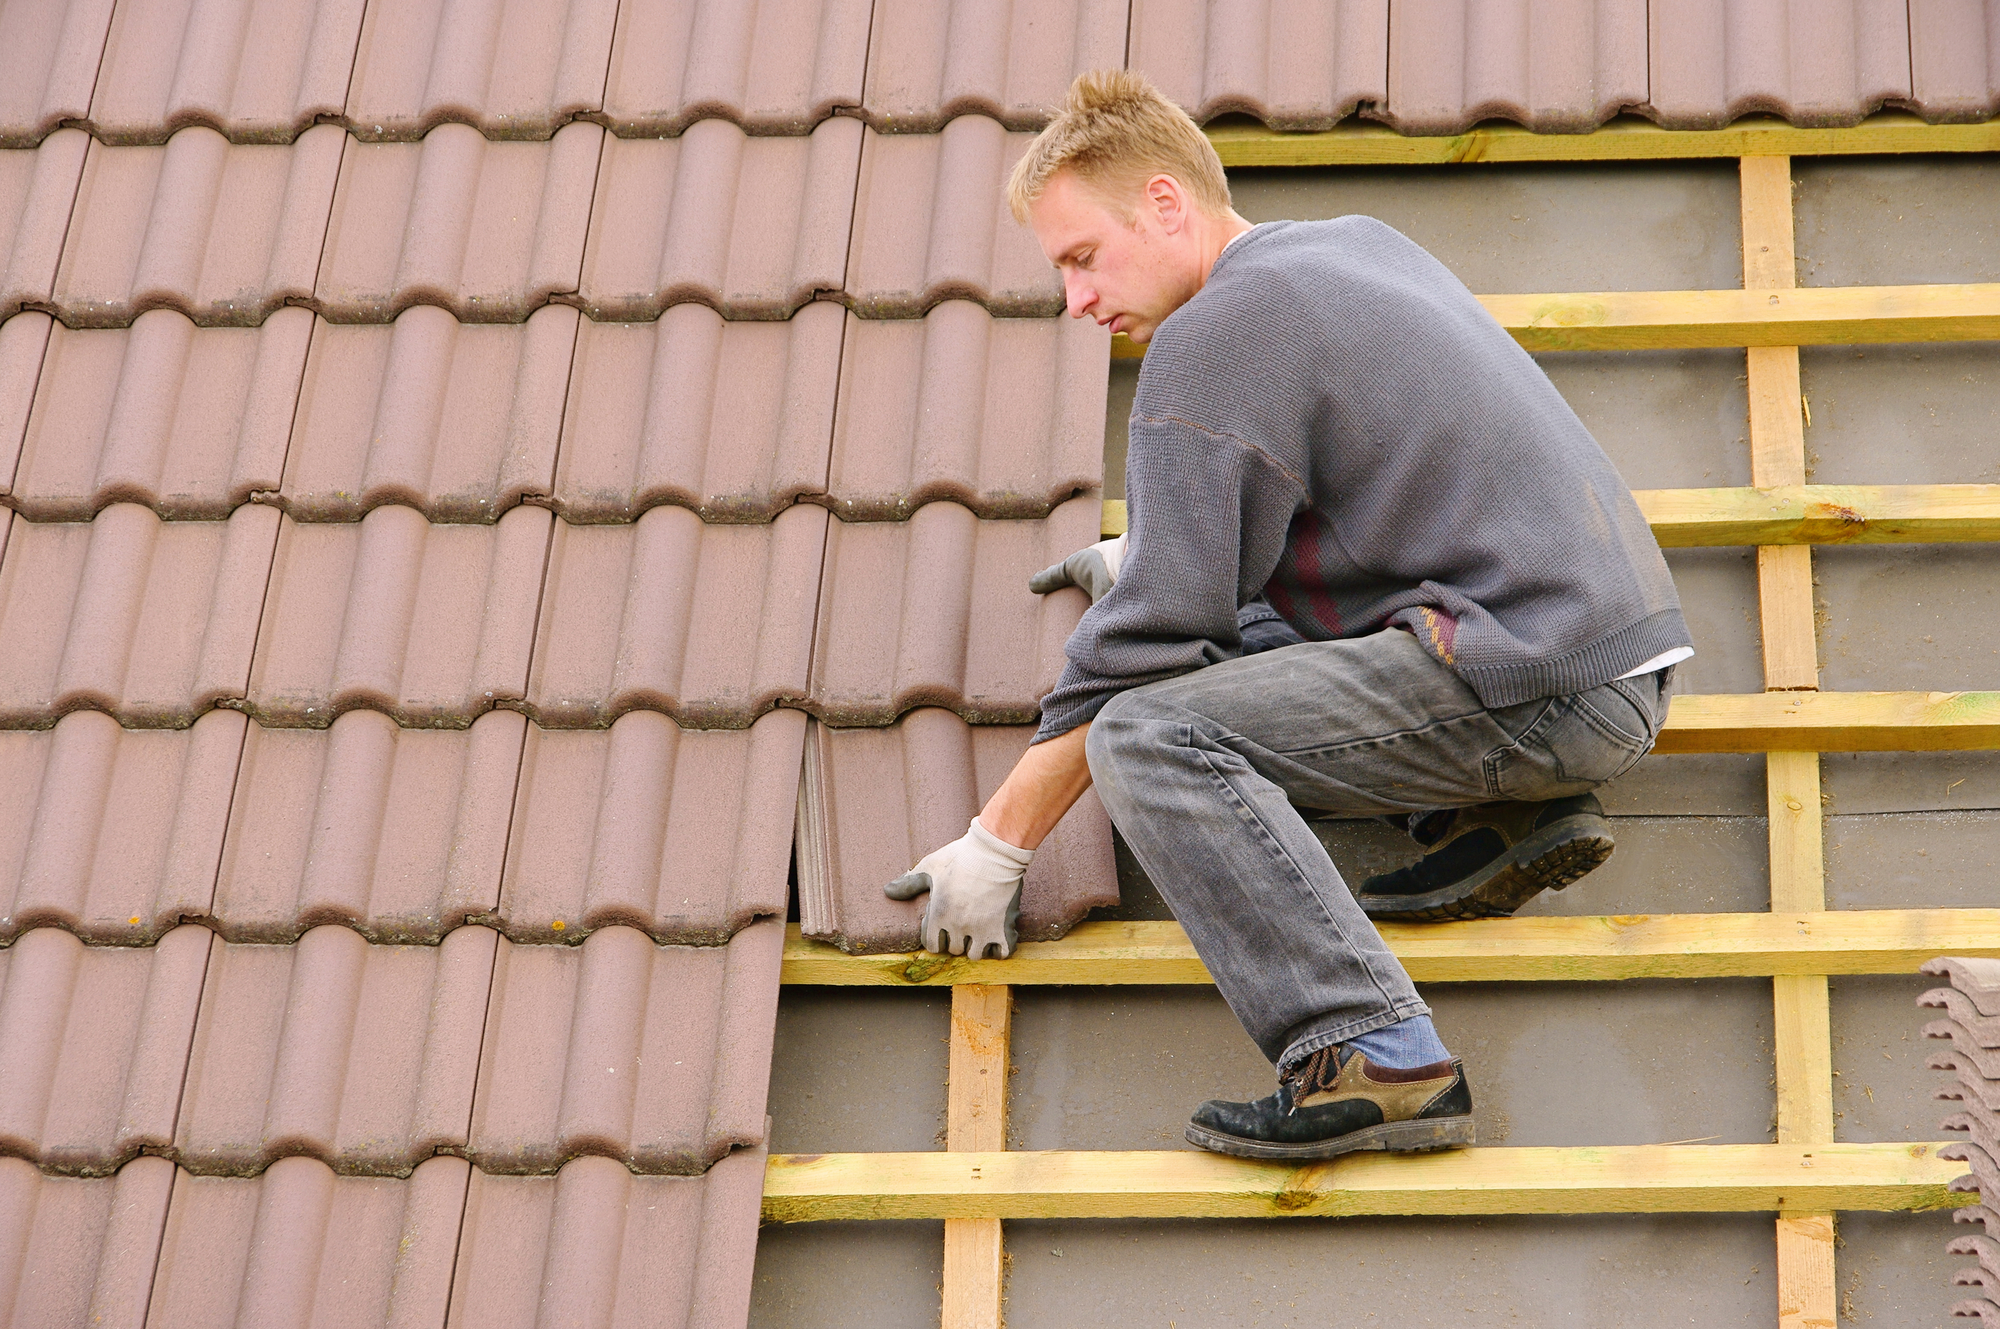 Tile roofing on house